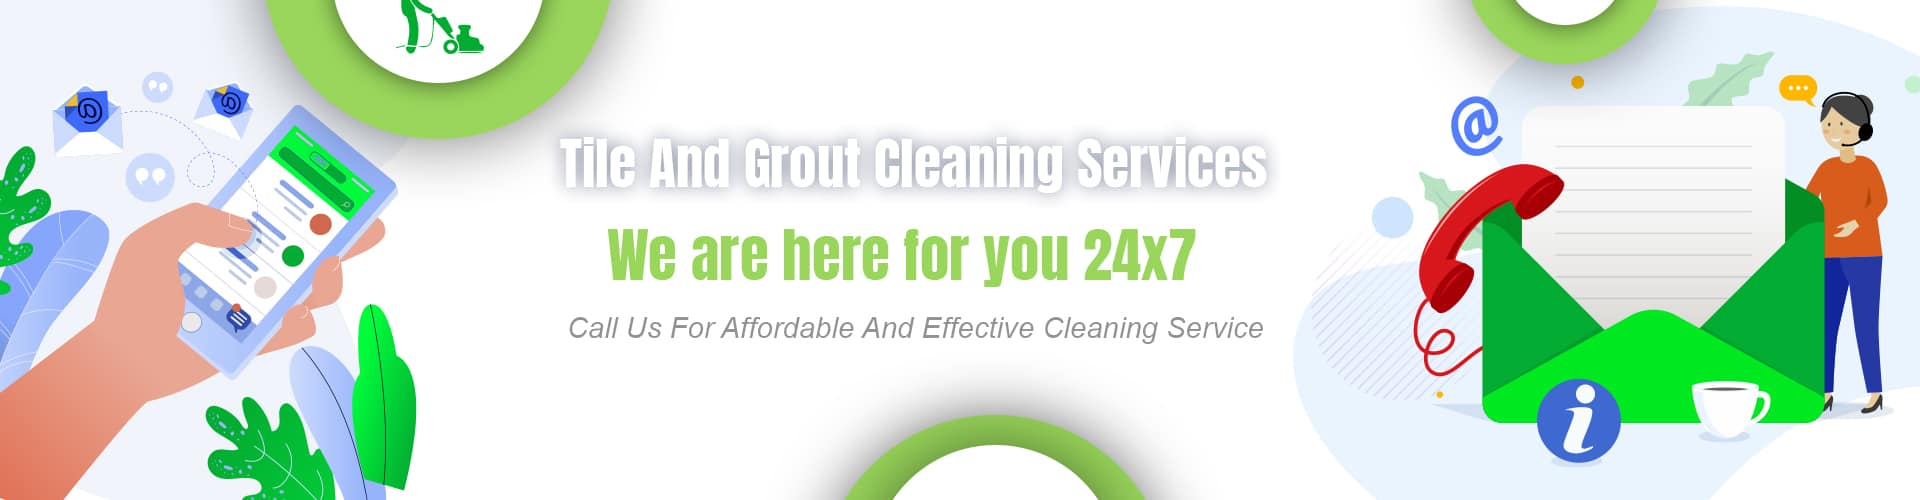 Contact Us For Tile And Grout Cleaning Services